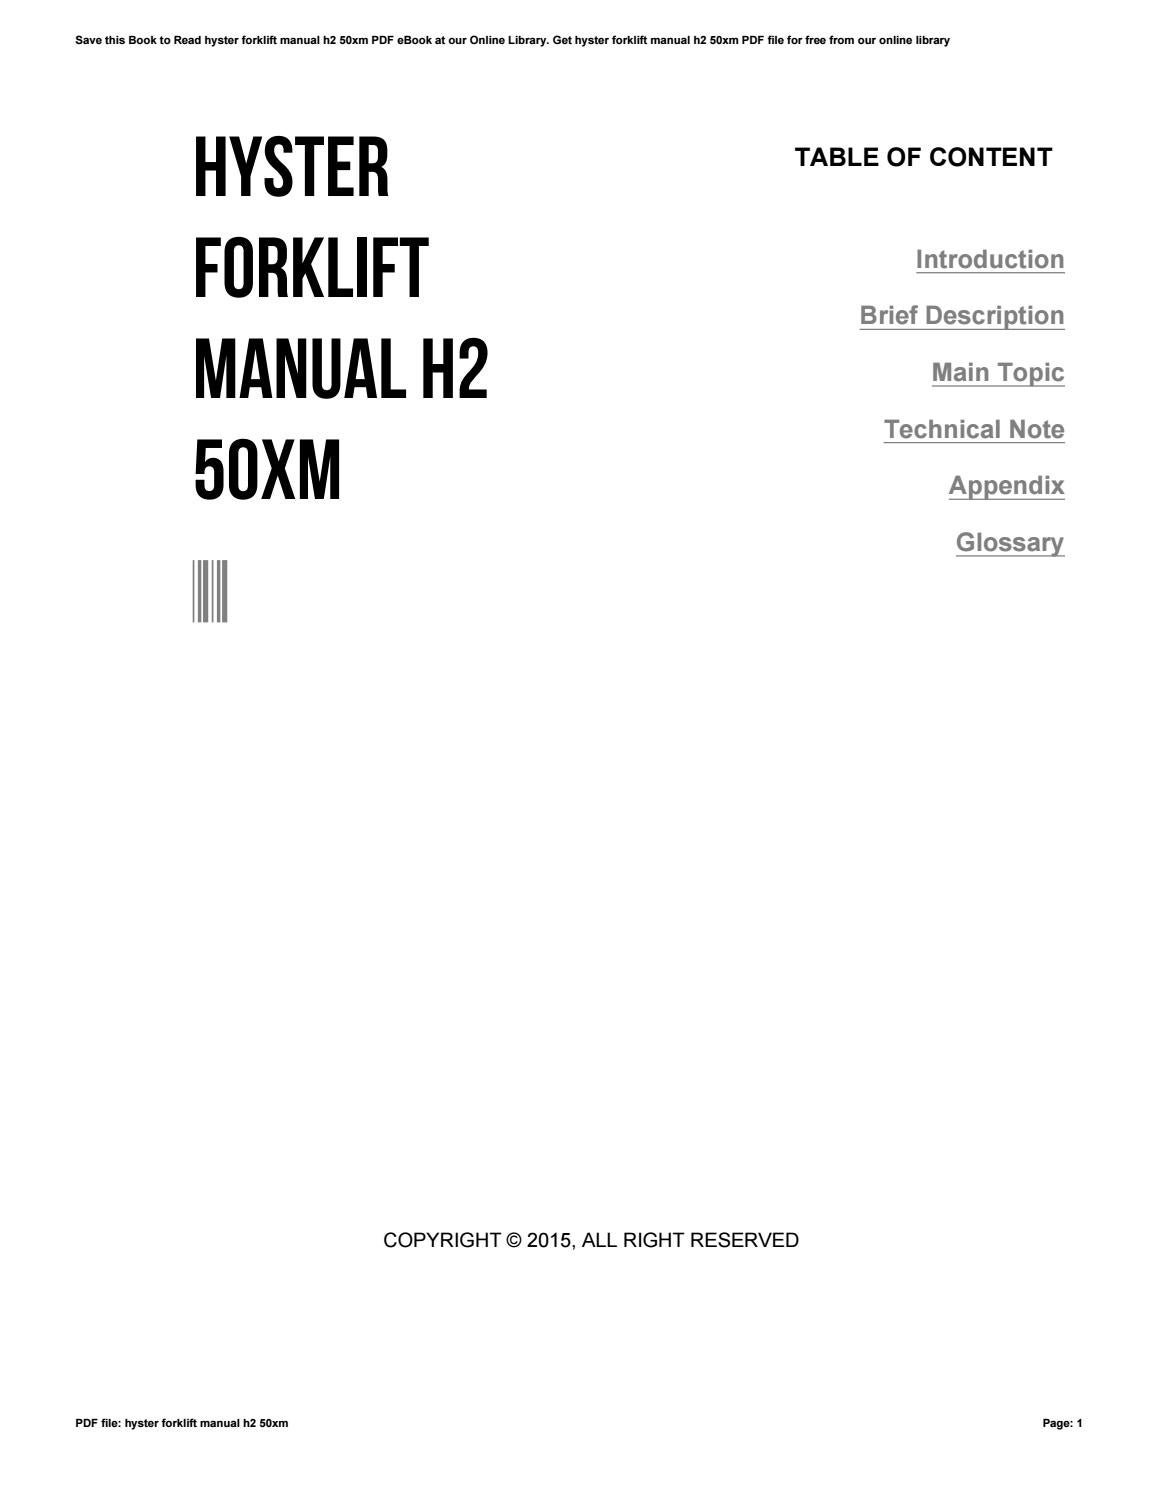 Hyster forklift manual h2 50xm by laoho68 - issuu